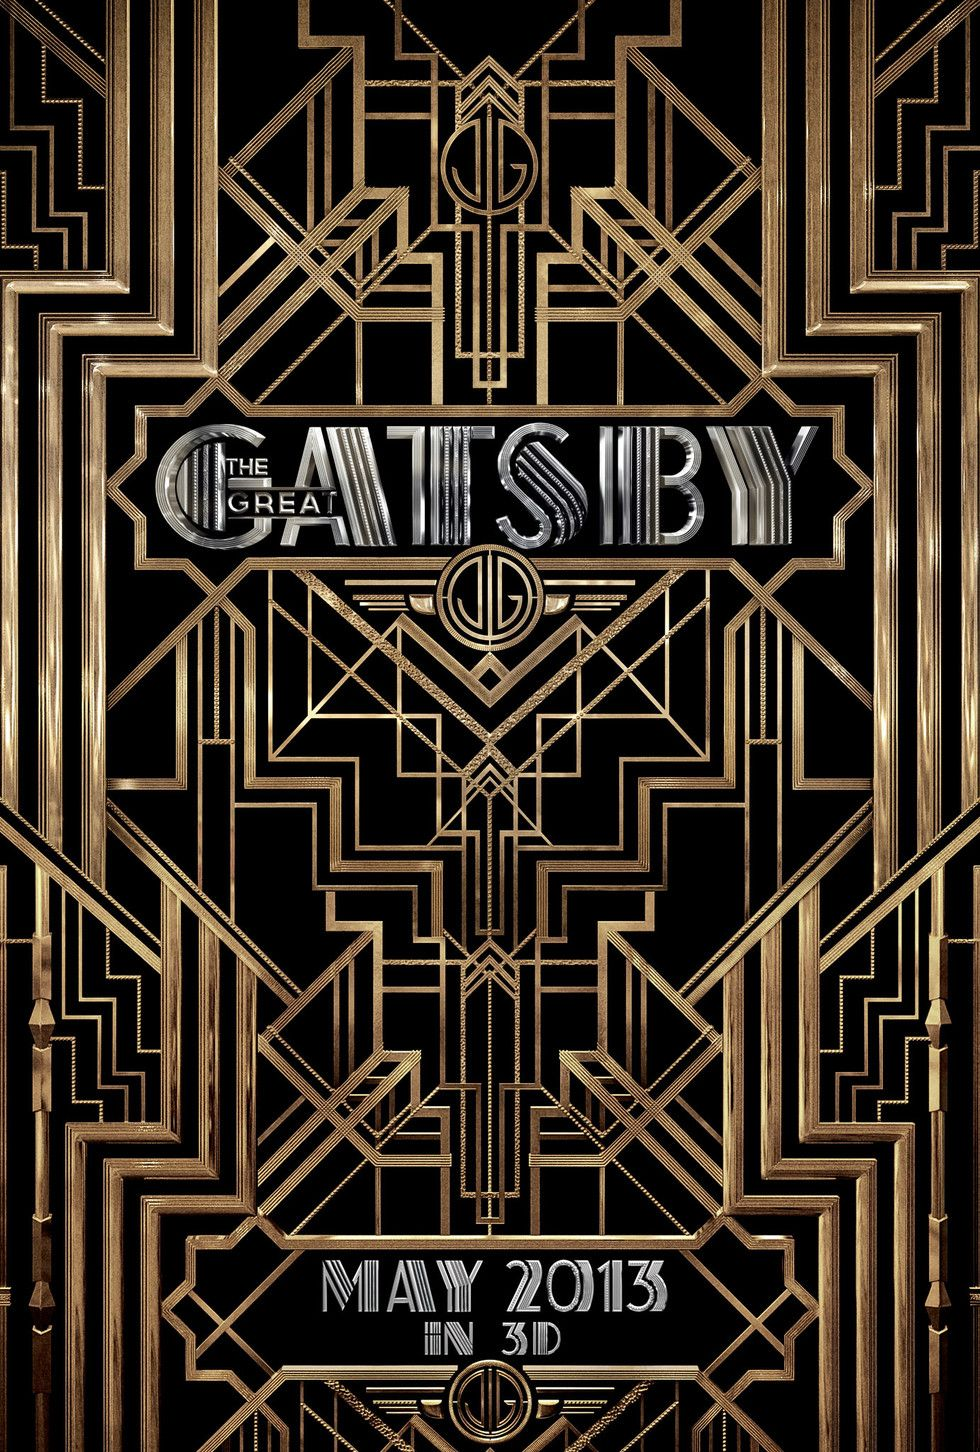 The Great Gatsby Movie Poster 2 Art deco fashion, Art